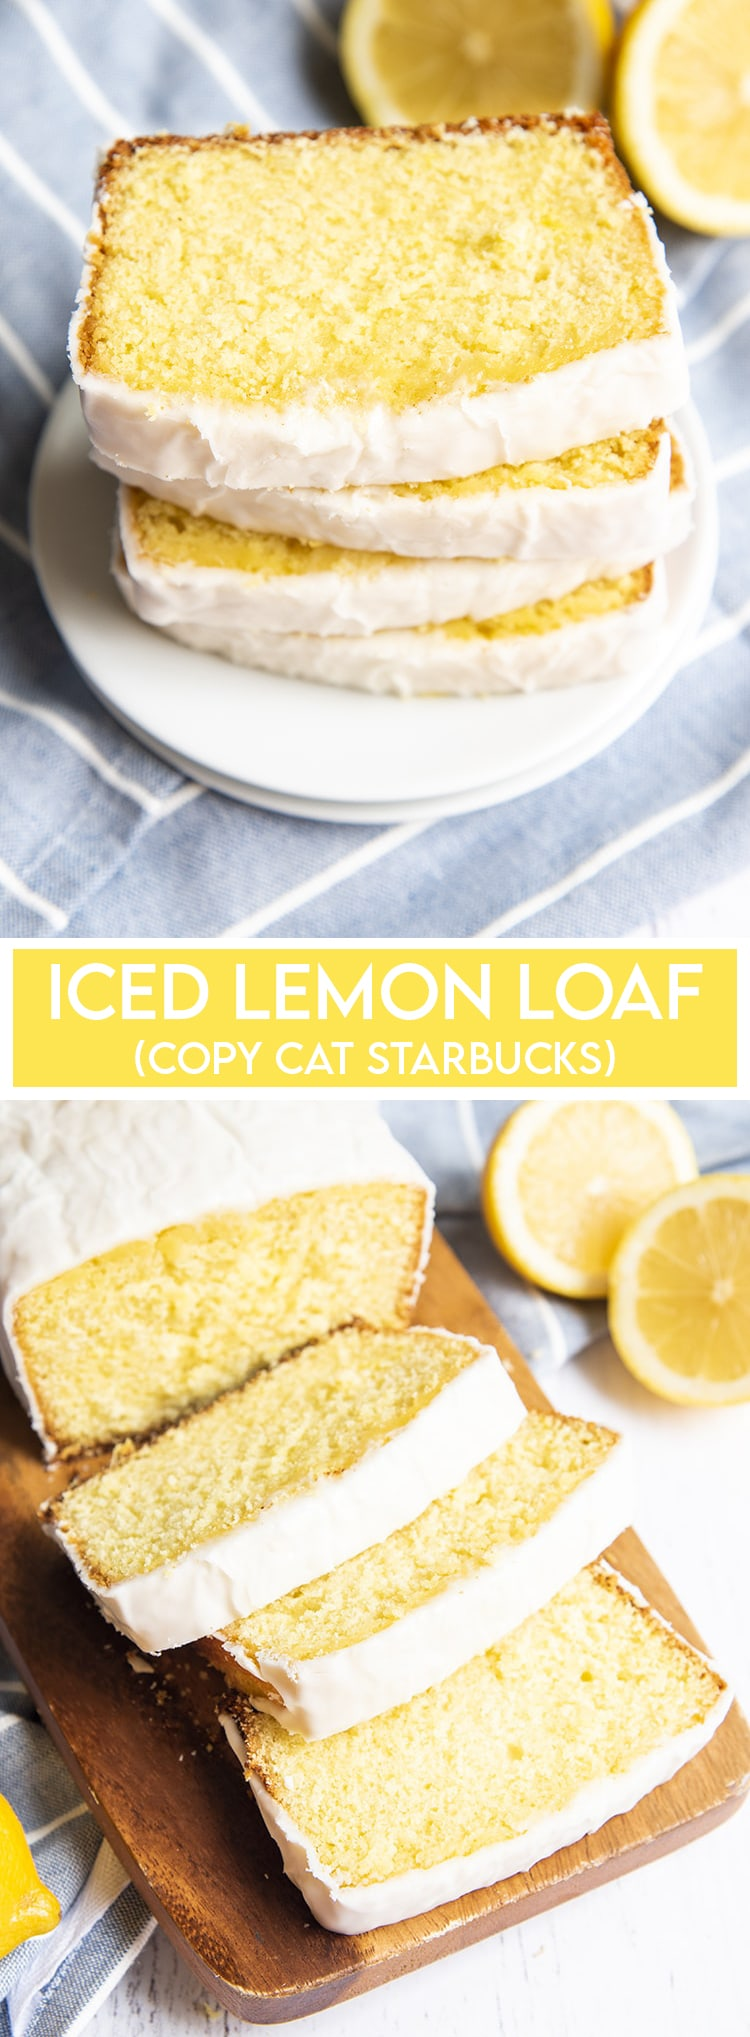 Two photos of lemon loaf with text in the middle for pinterest. Slices of iced lemon loaf bread stacked on top with a photo of sliced lemon loaf bread on a cutting board.